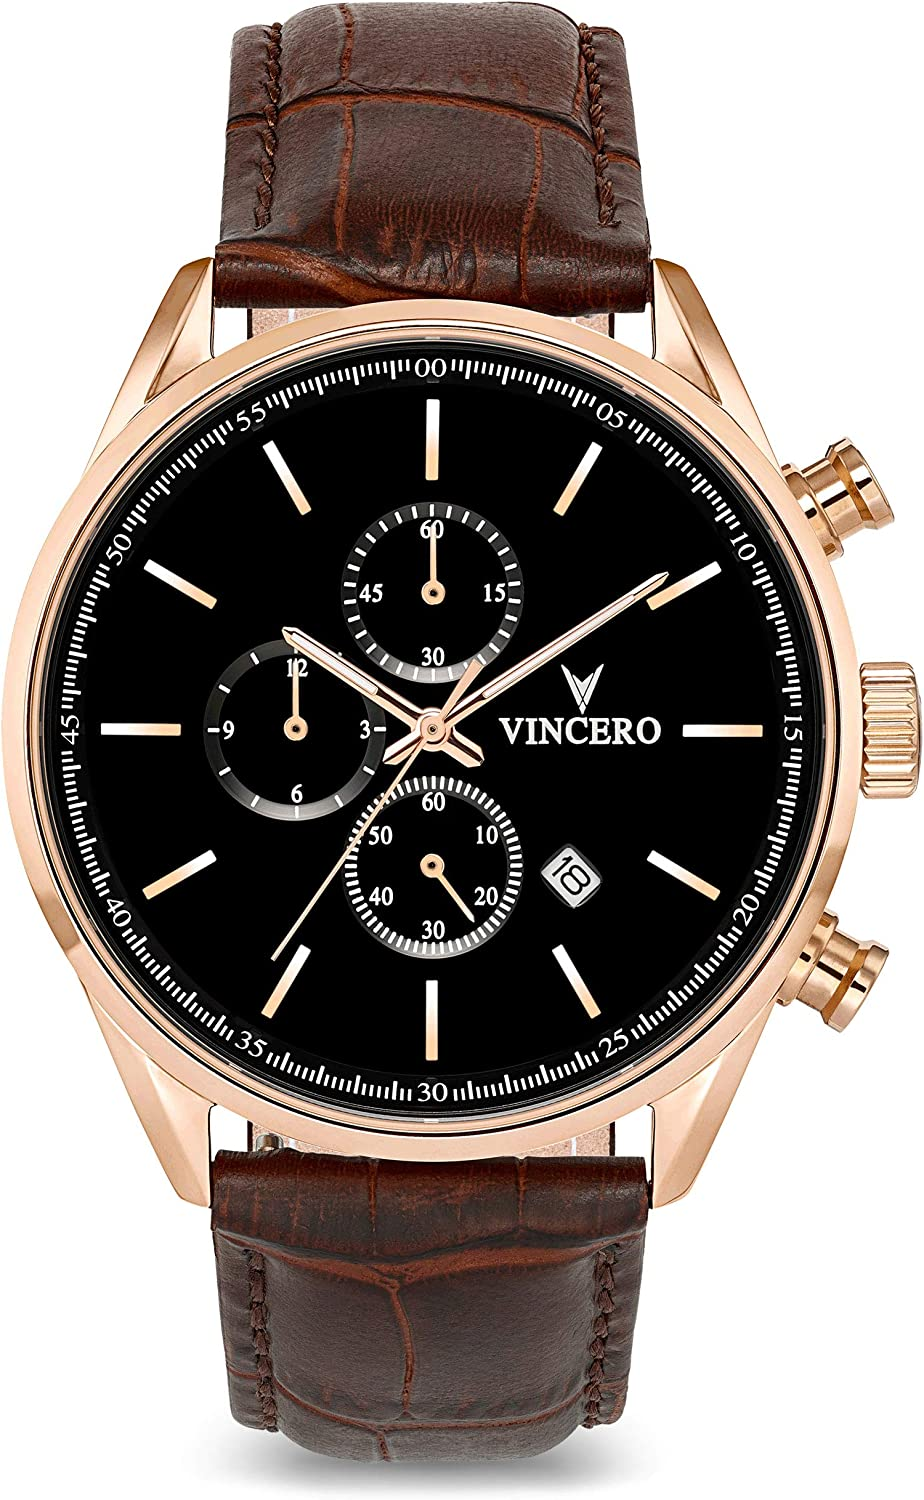 Vincero Luxury Men s Chrono S Wrist Watch – Top Grain Italian Leather Watch Band – 43mm Chronograph Watch – Japanese Quartz Movement